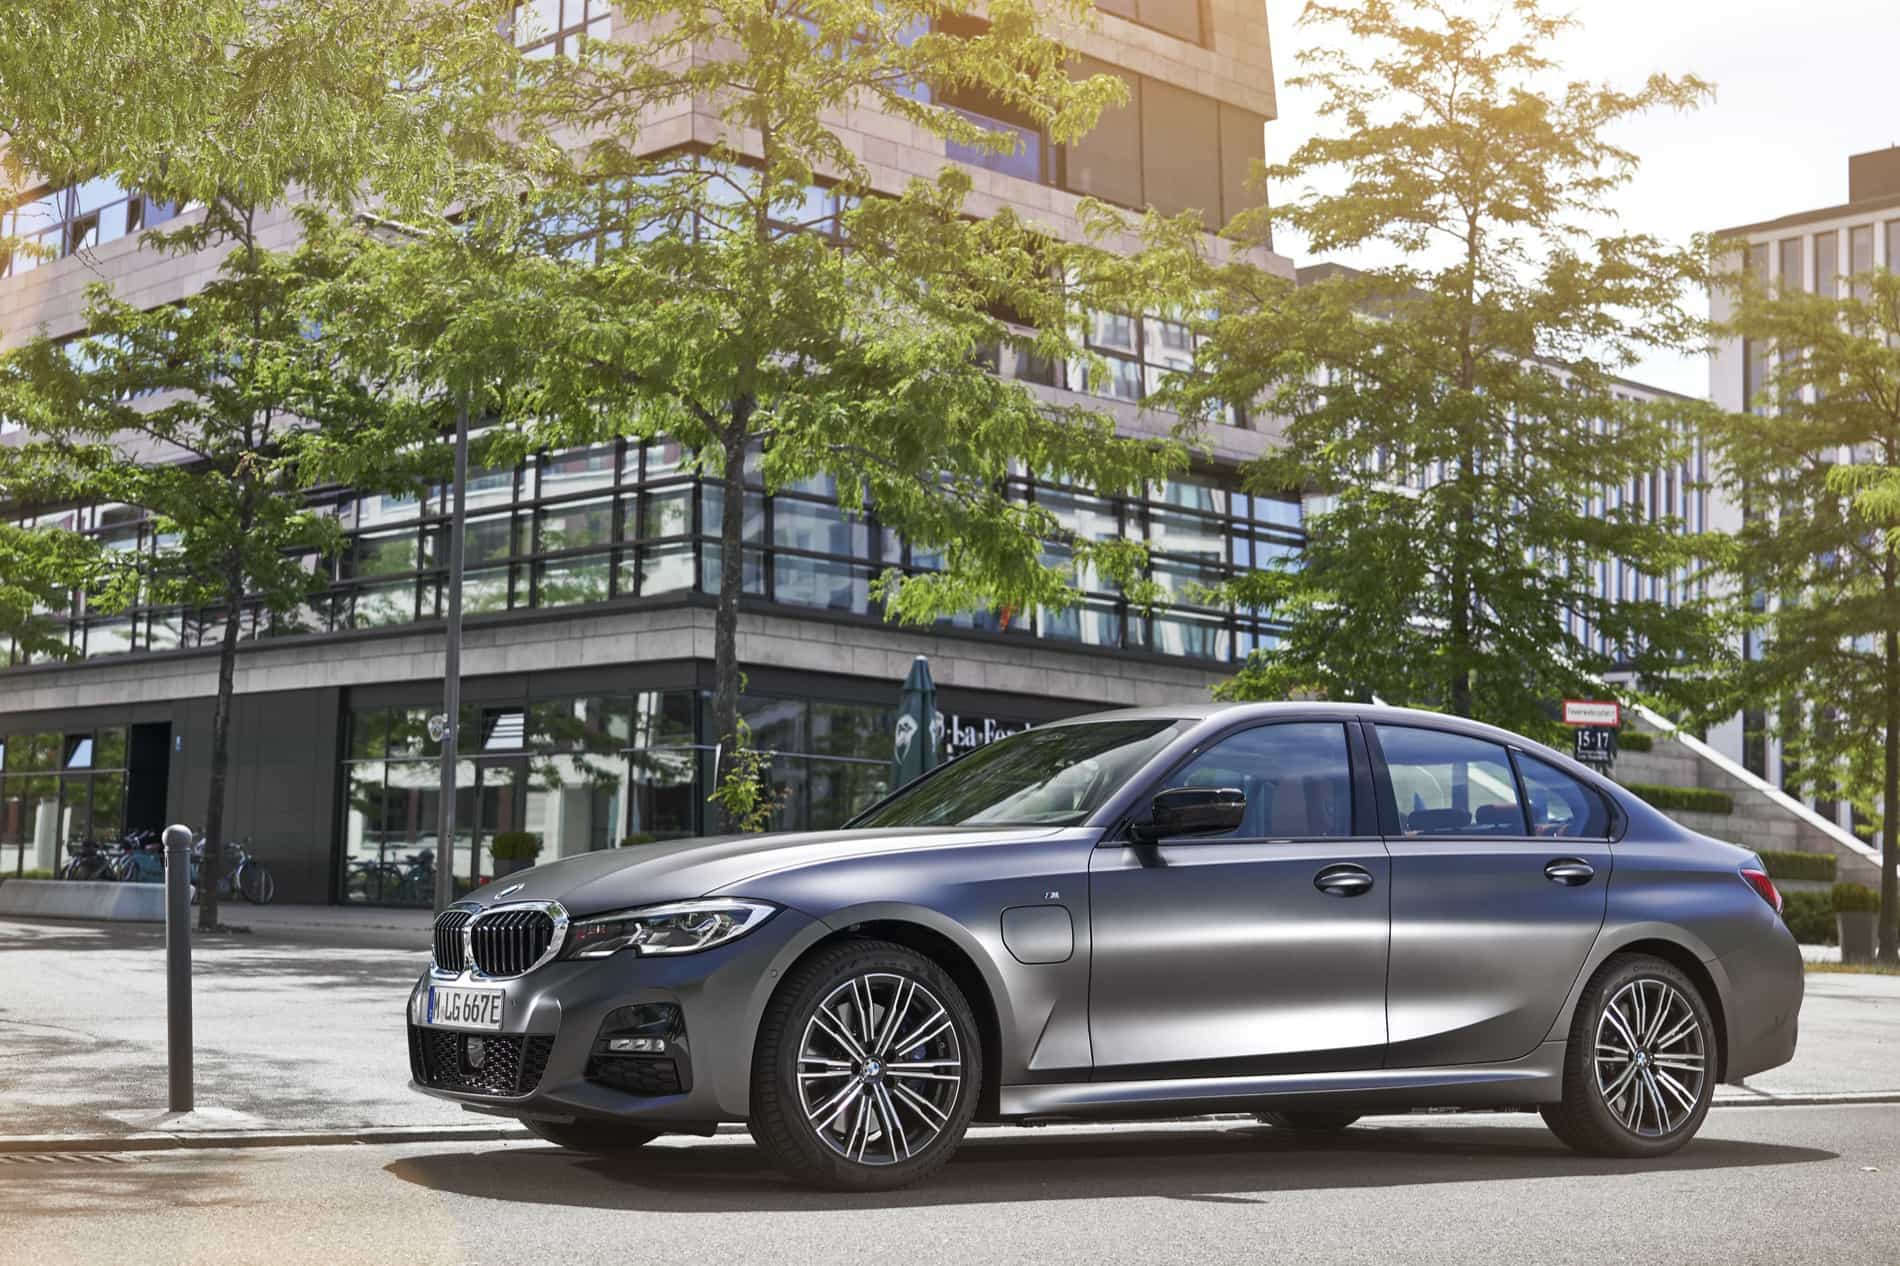 BMW_3_Series_Plug-in_Hybrid-015